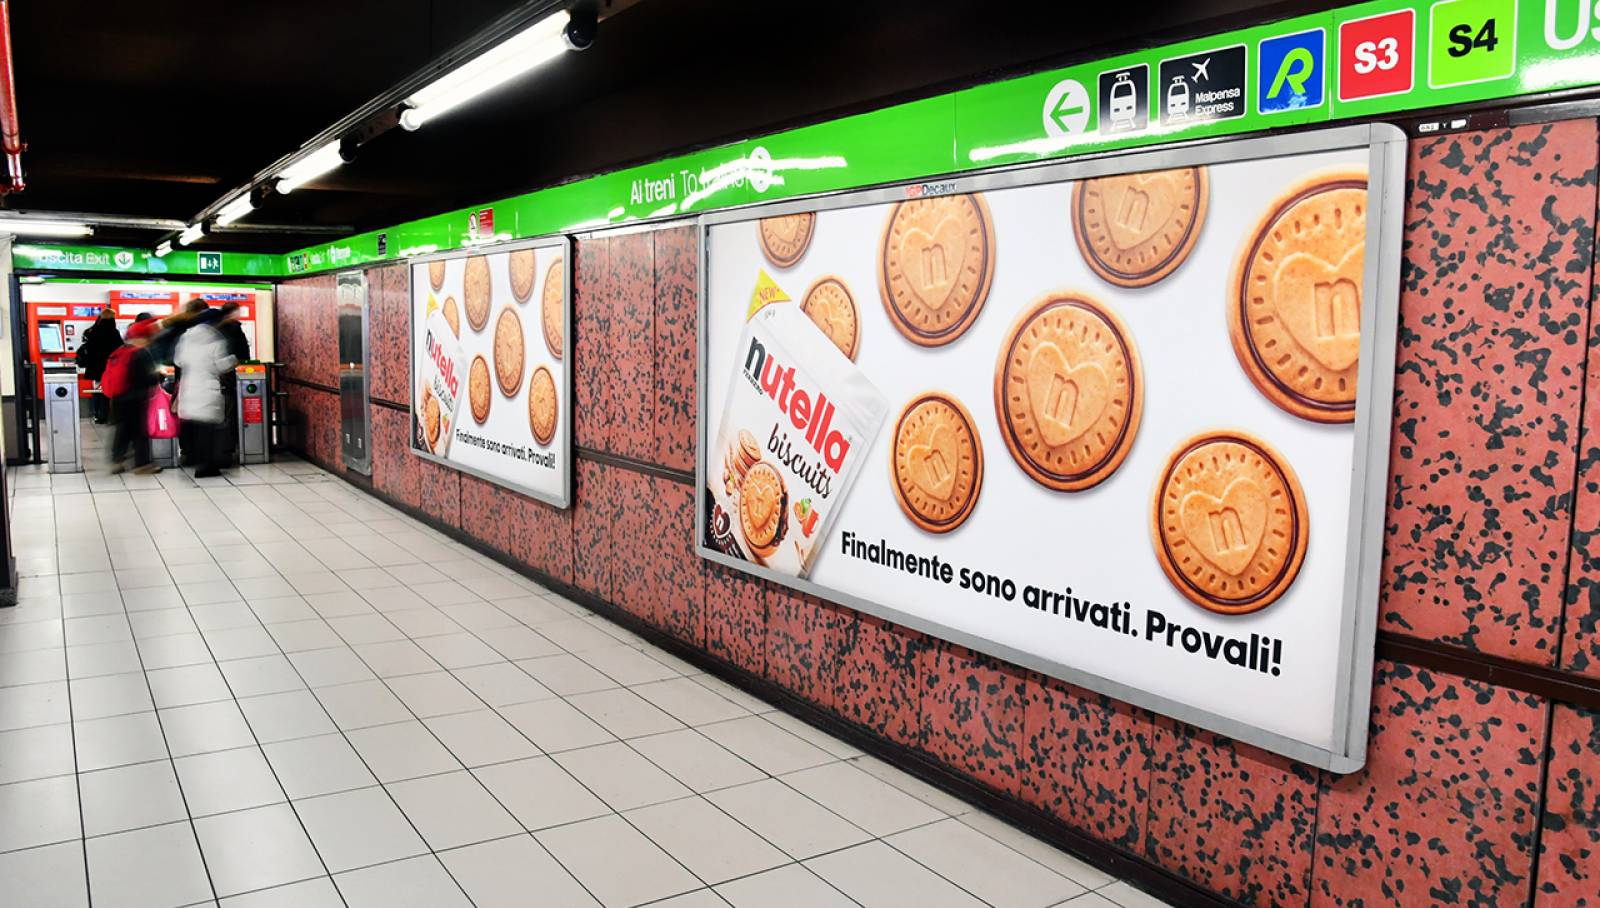 Station Domination IGPDecaux for Ferrero Nutella Biscuits in Milan